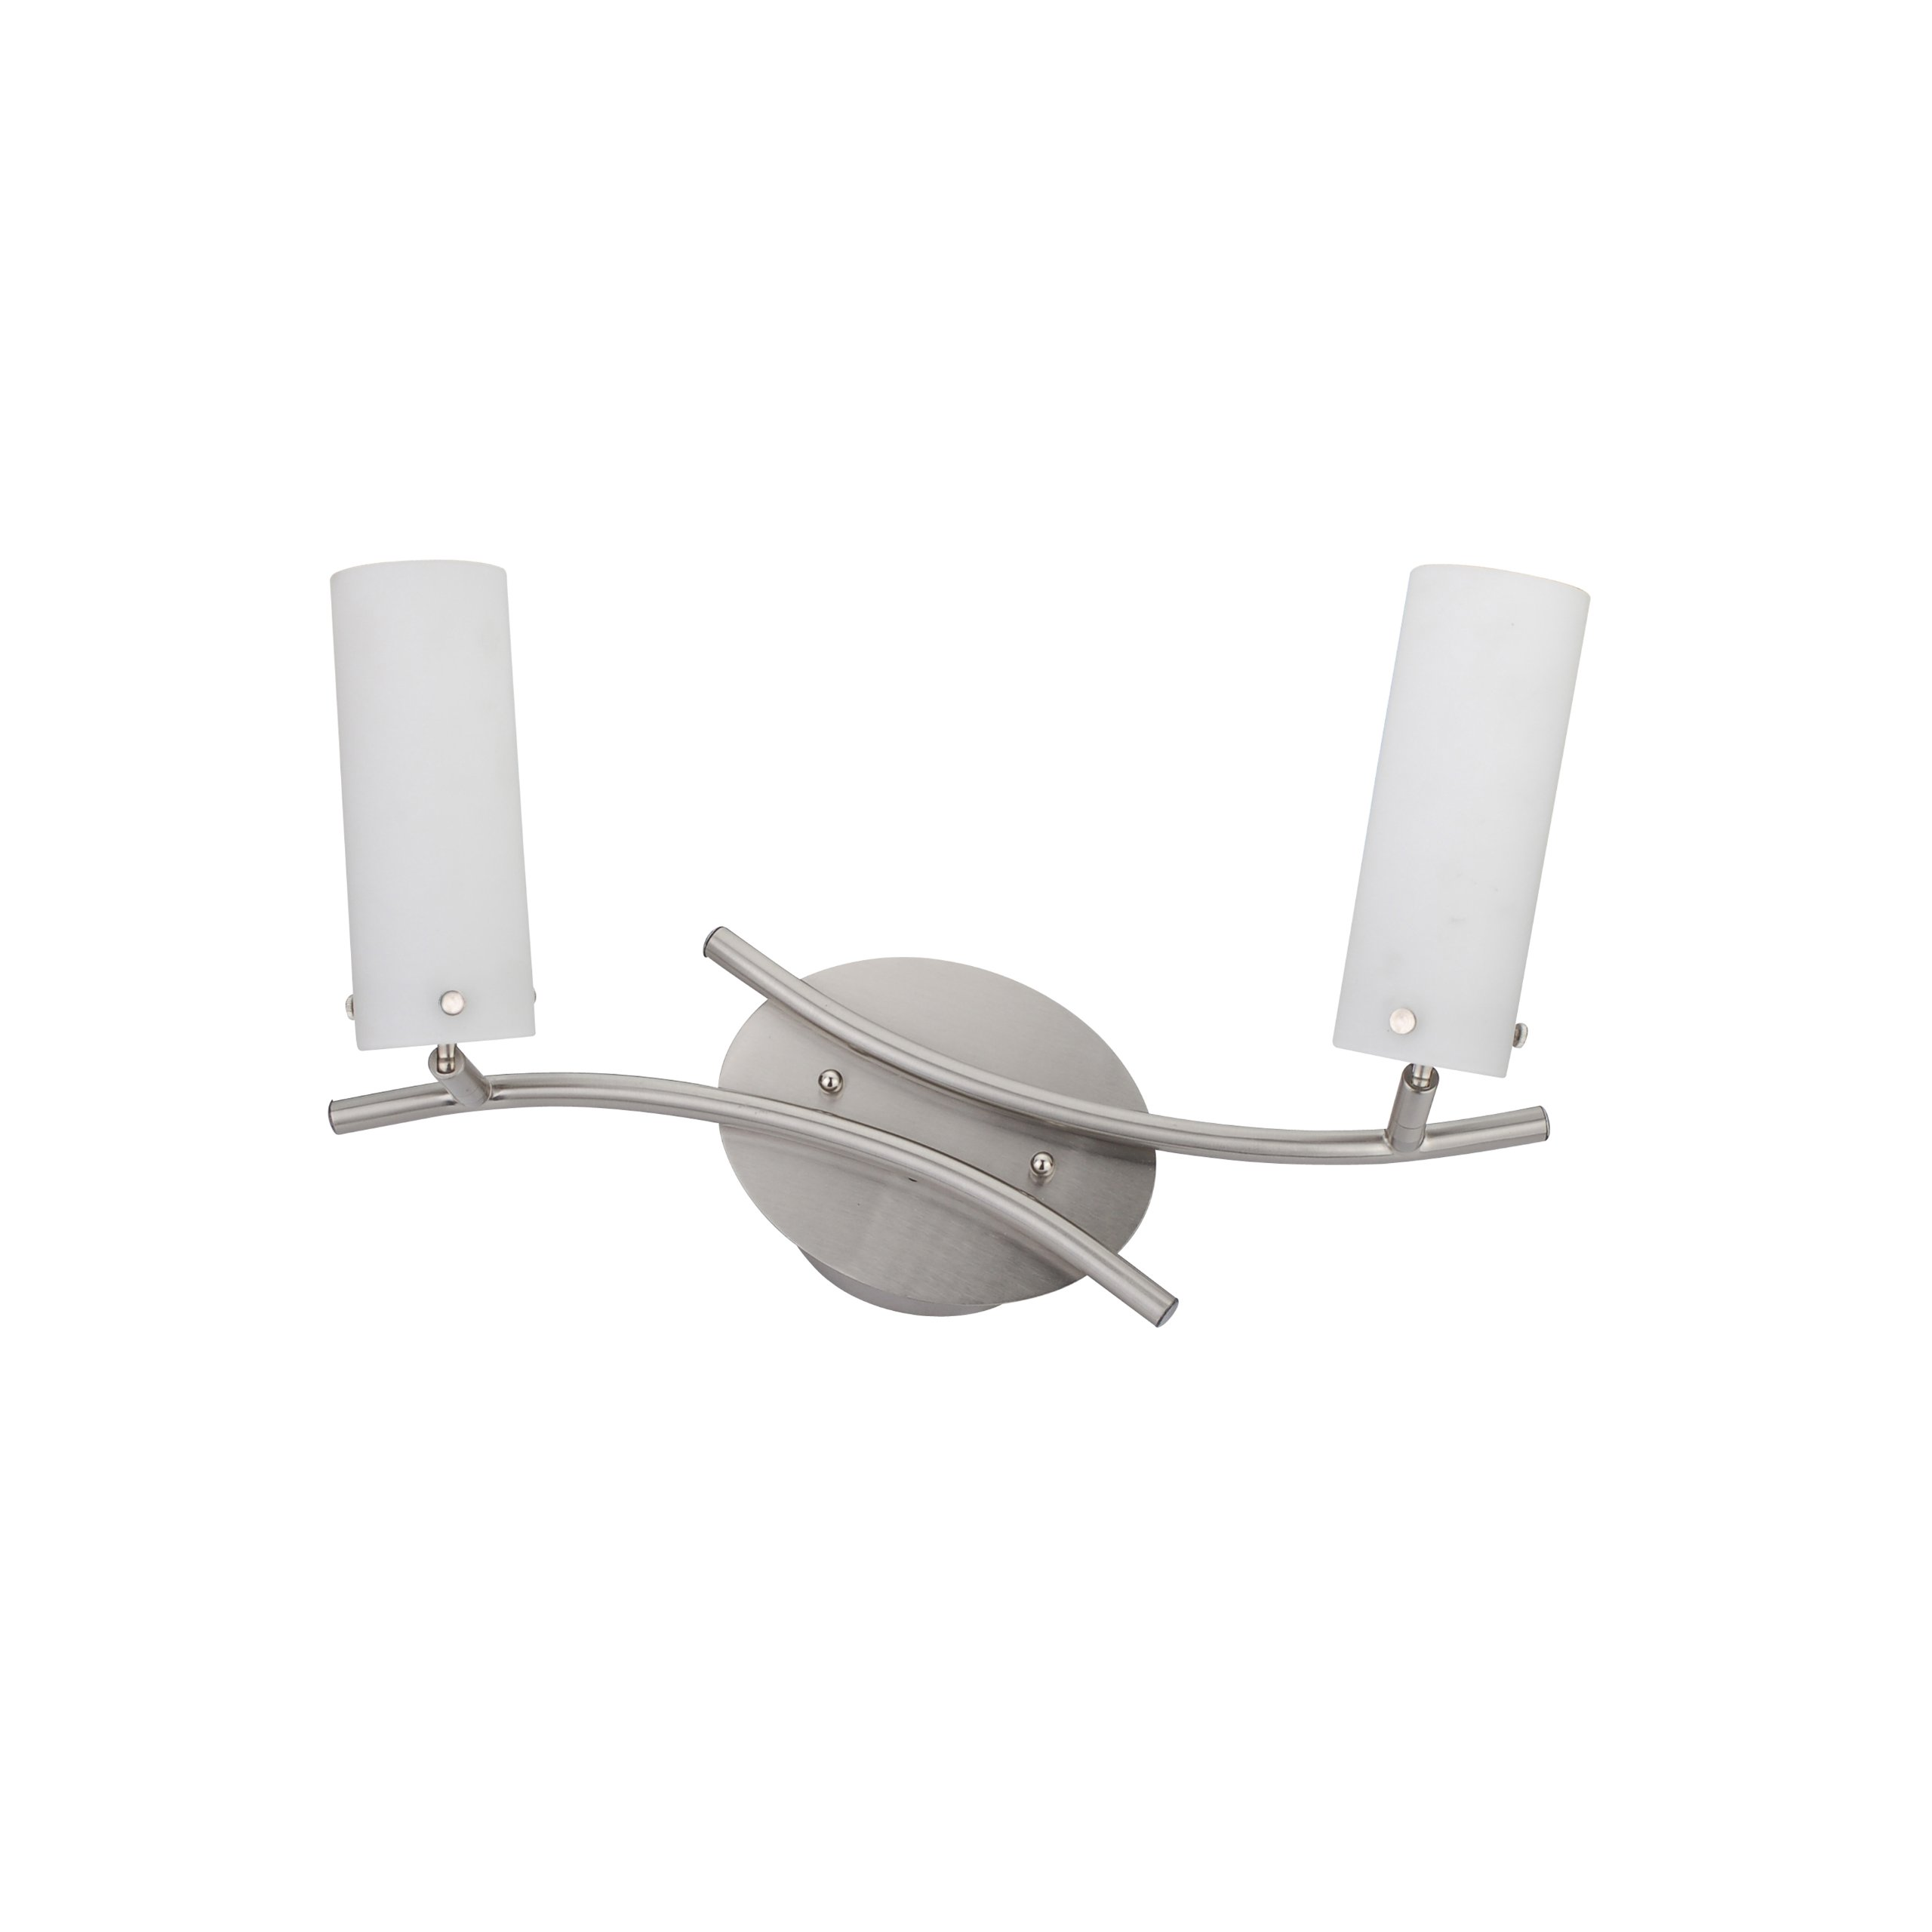 Whitfield ESTP55-2SS Hestia 18-Inch Energy Star Two-Light Track, Satin Steel with Dove White Glass